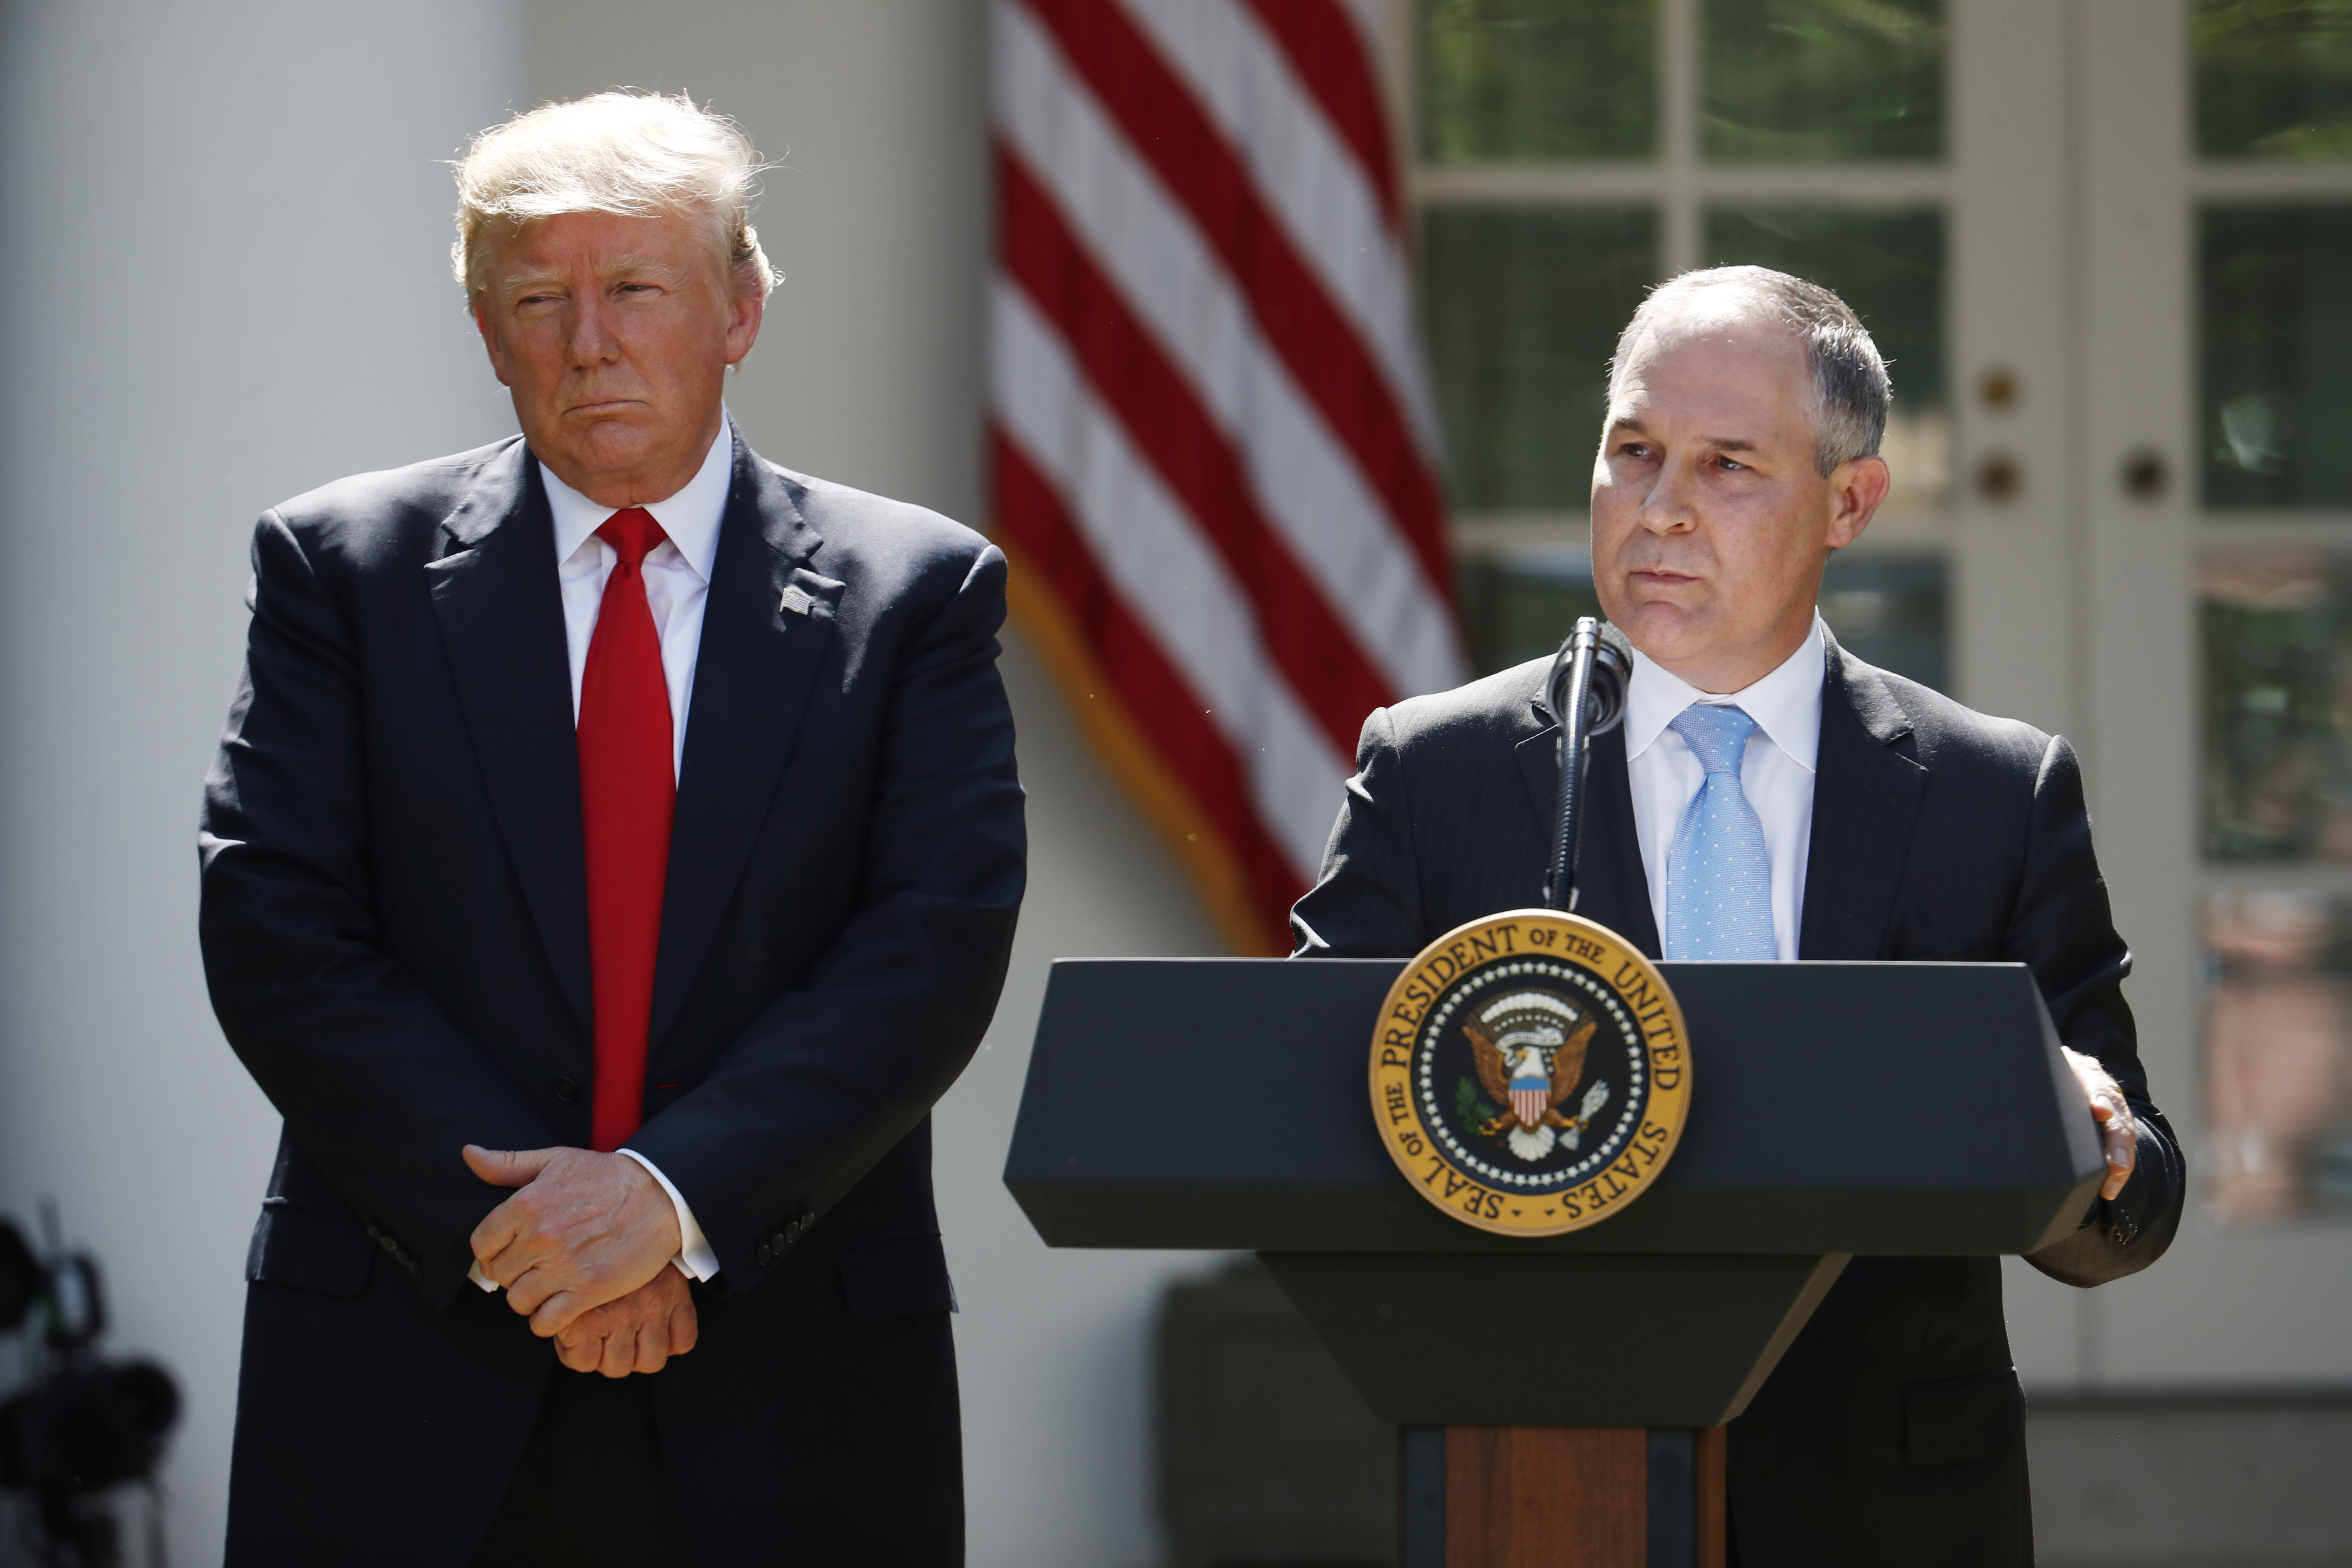 Trumps Climate War-1 FILE - In this June 1, 2017 file photo, President Donald Trump listens as EPA Administrator Scott Pruitt speaks about the U.S. role in the Paris climate change accord in the Rose Garden of the White House in Washington. Trump's recent decision to pull the United States from the international climate deal reached in Paris was but the latest in a rapid-fire series of moves that would weaken or dismantle federal initiatives to reduce carbon emissions, which scientists say are heating the planet to levels that could have disastrous consequences. (AP Photo/Pablo Martinez Monsivais)